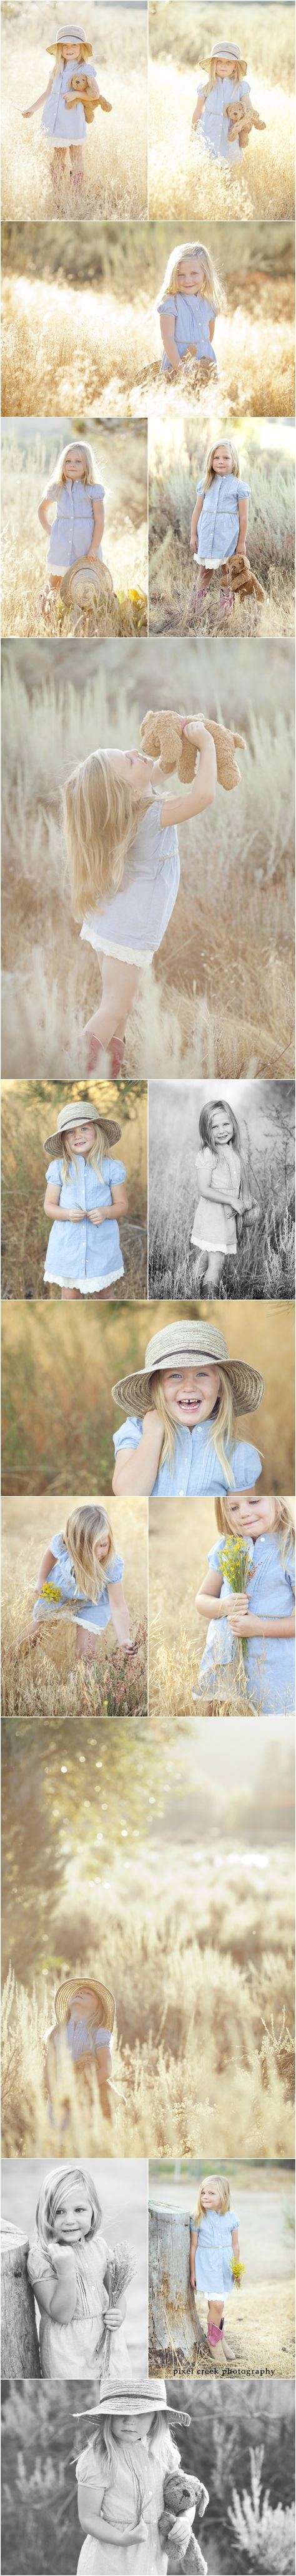 Our Free Spirit | San Diego Family Photographer - San Diego Photography | San Diego Photographer | Pixel Creek Photograhy | Karen Cox San Diego County Photographer Specializing in Family, Children, Couples, and High School Seniors